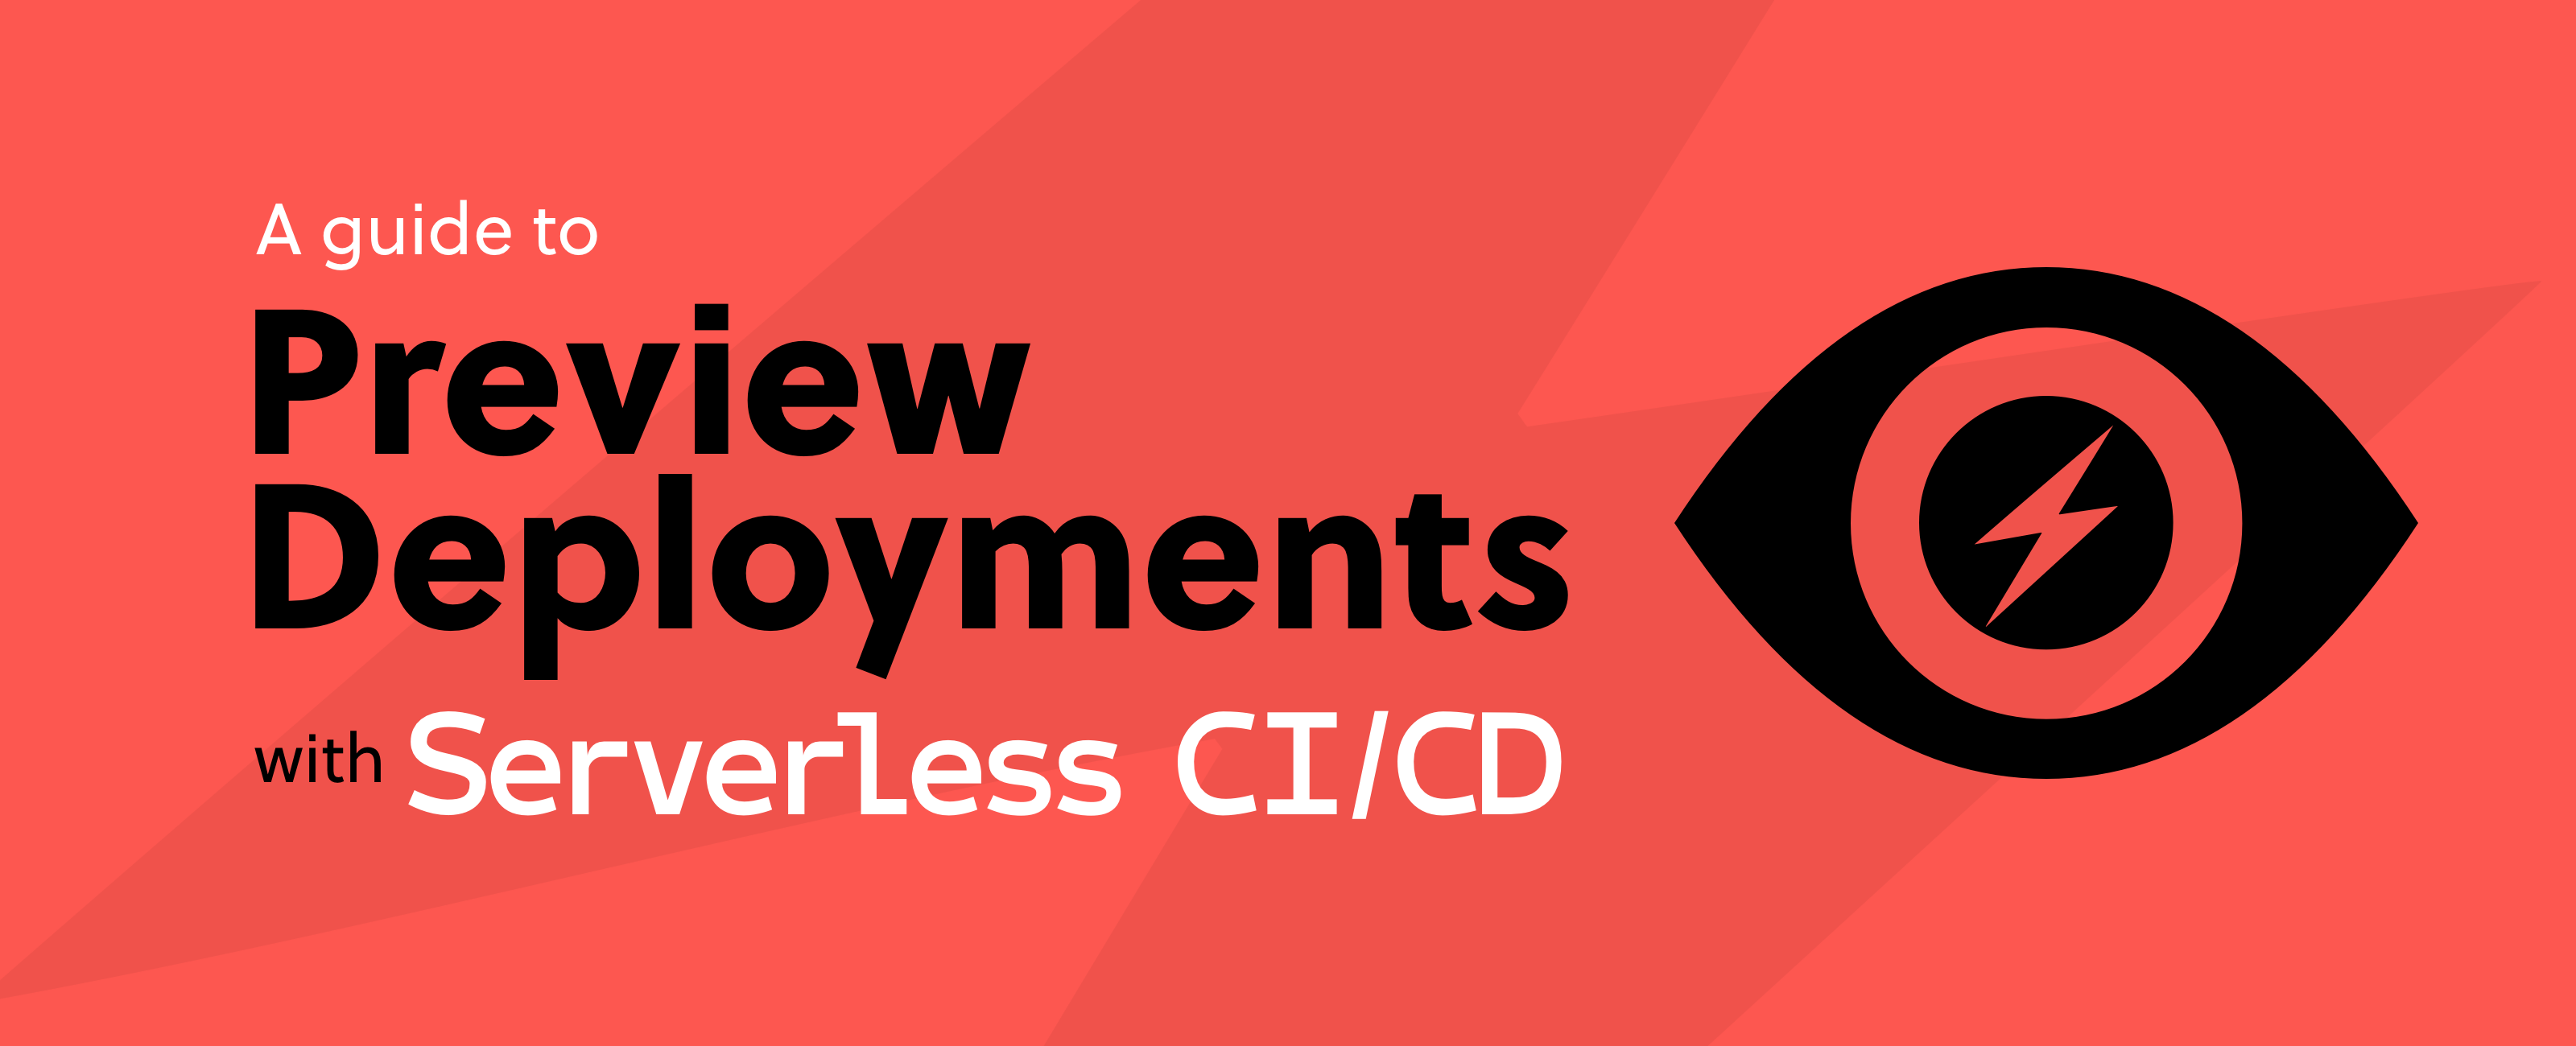 Serverless CI/CD Preview Deployments